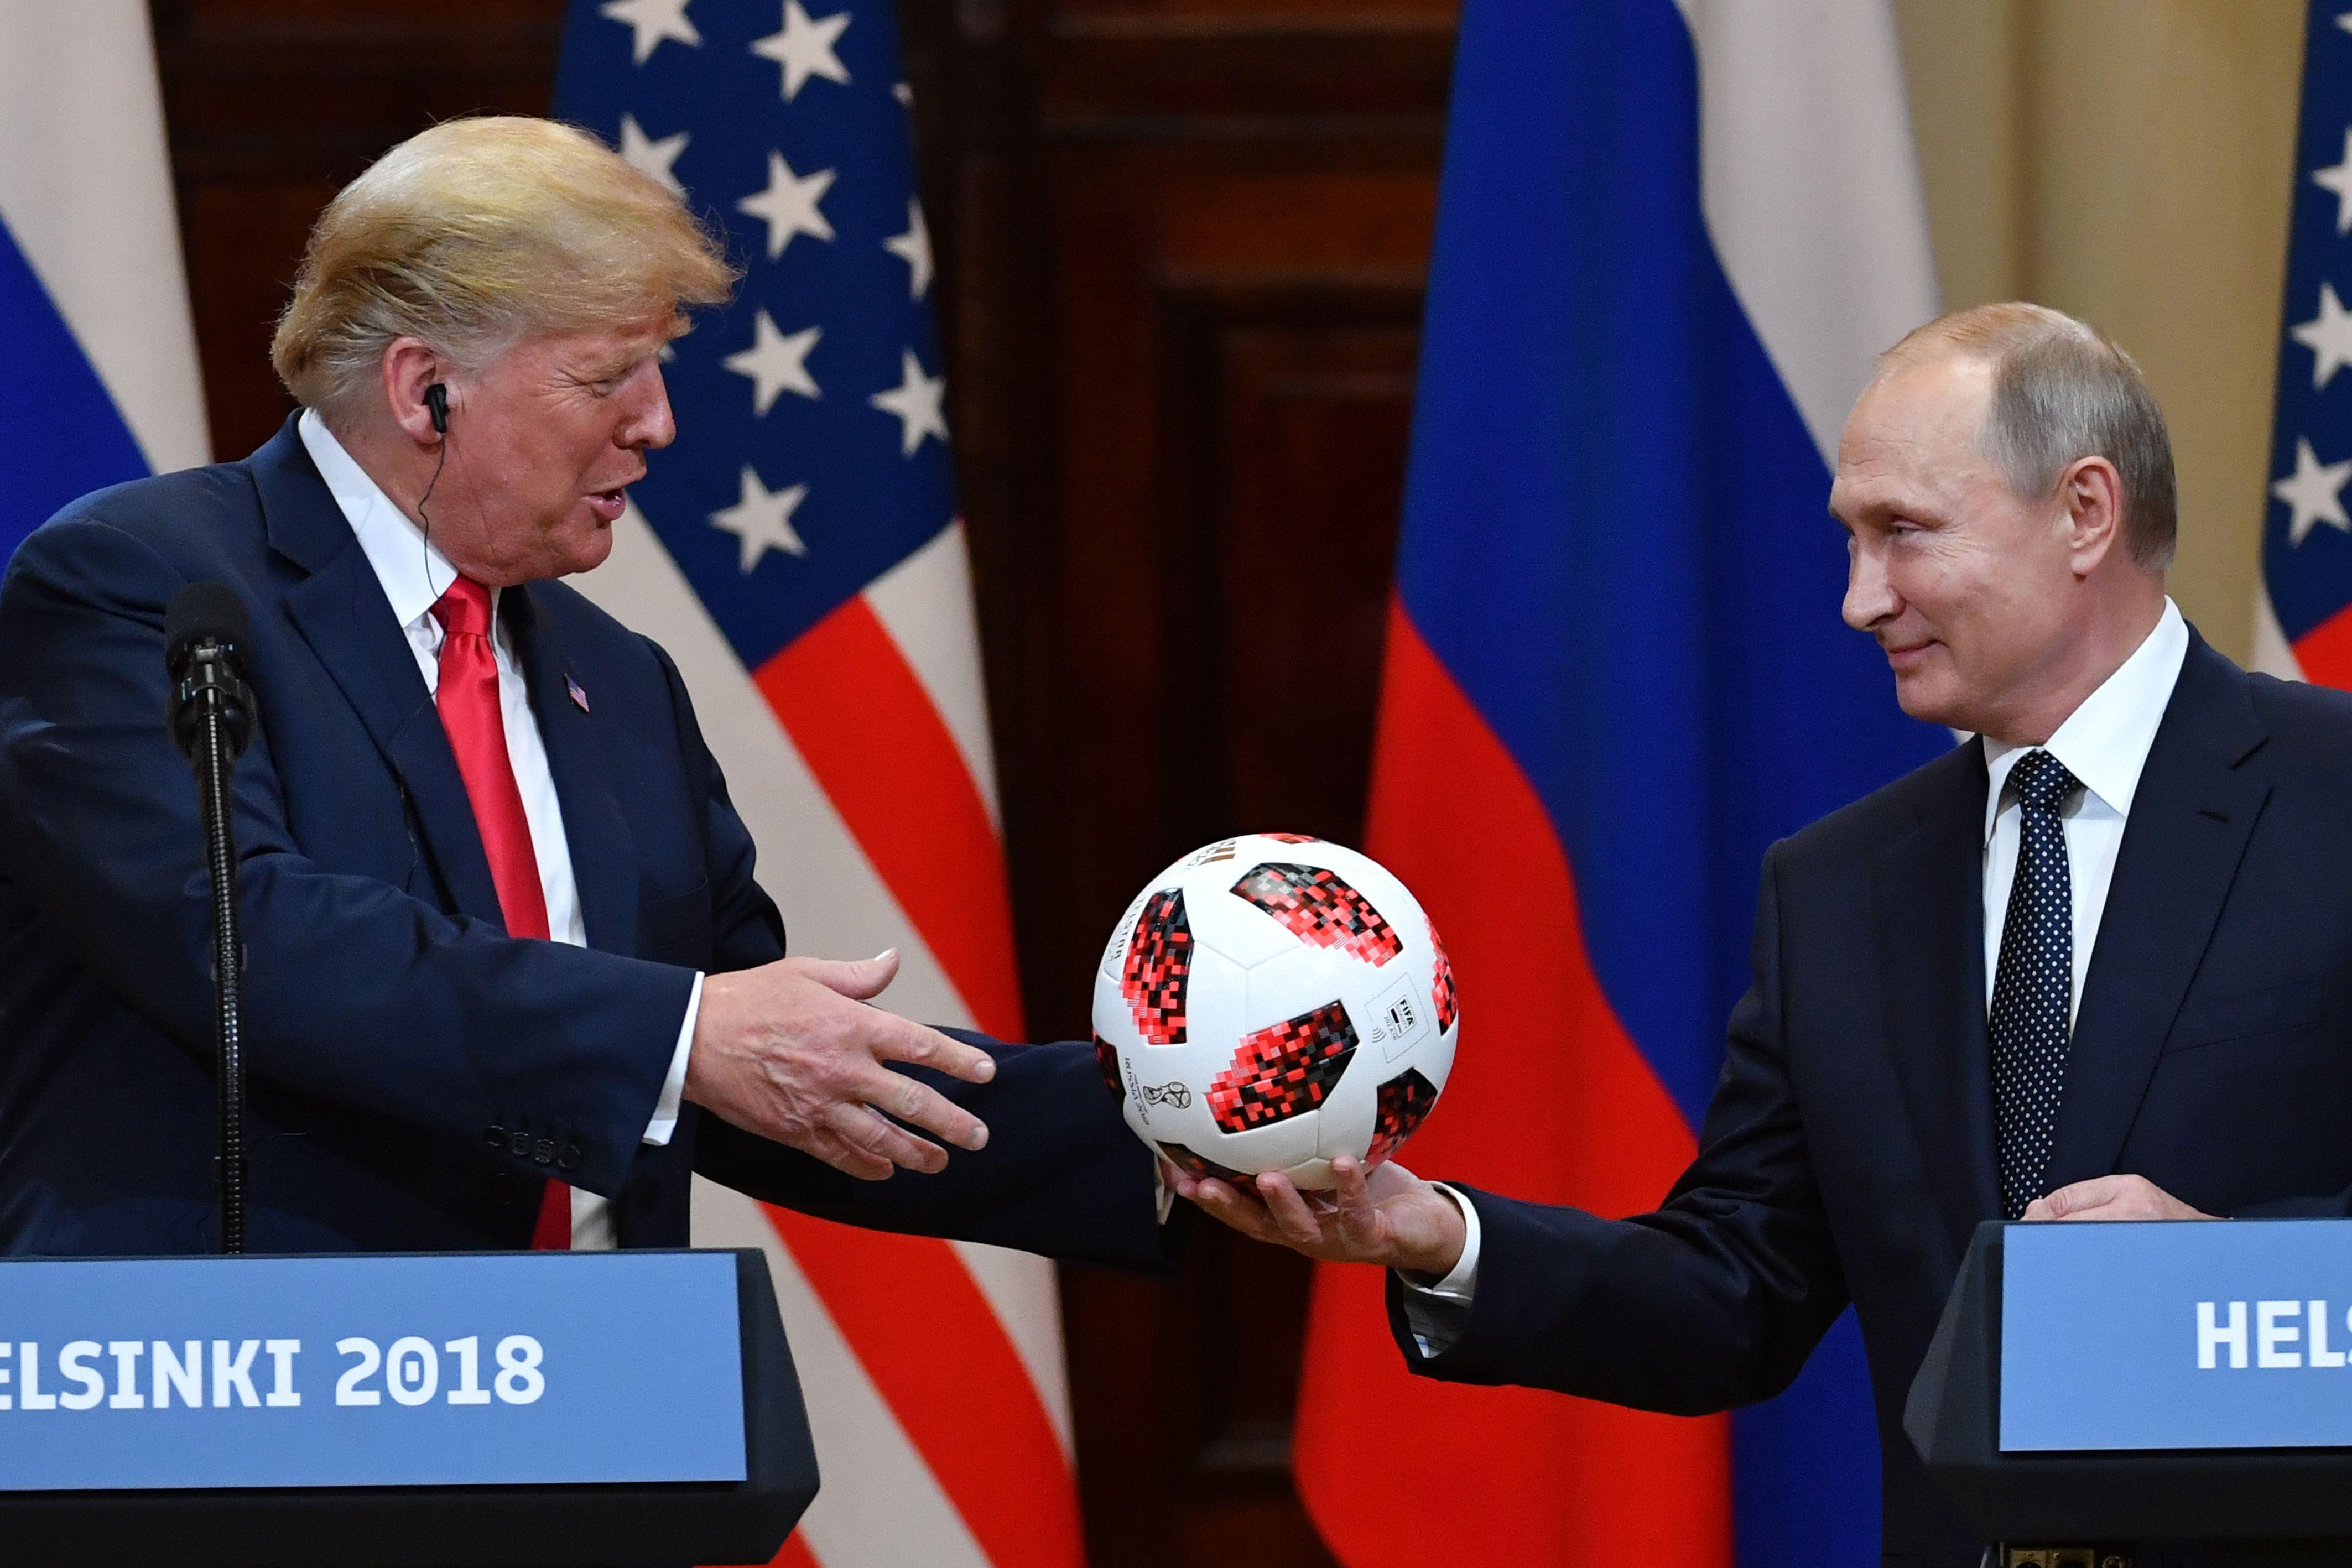 <p>Russia's President Vladimir Putin offers a ball of the 2018 football World Cup to US President Donald Trump during a joint press conference after a meeting at the Presidential Palace in Helsinki, on July 16, 2018. (Photo: Yuri Kadobnov/AFP/Getty Images) </p>